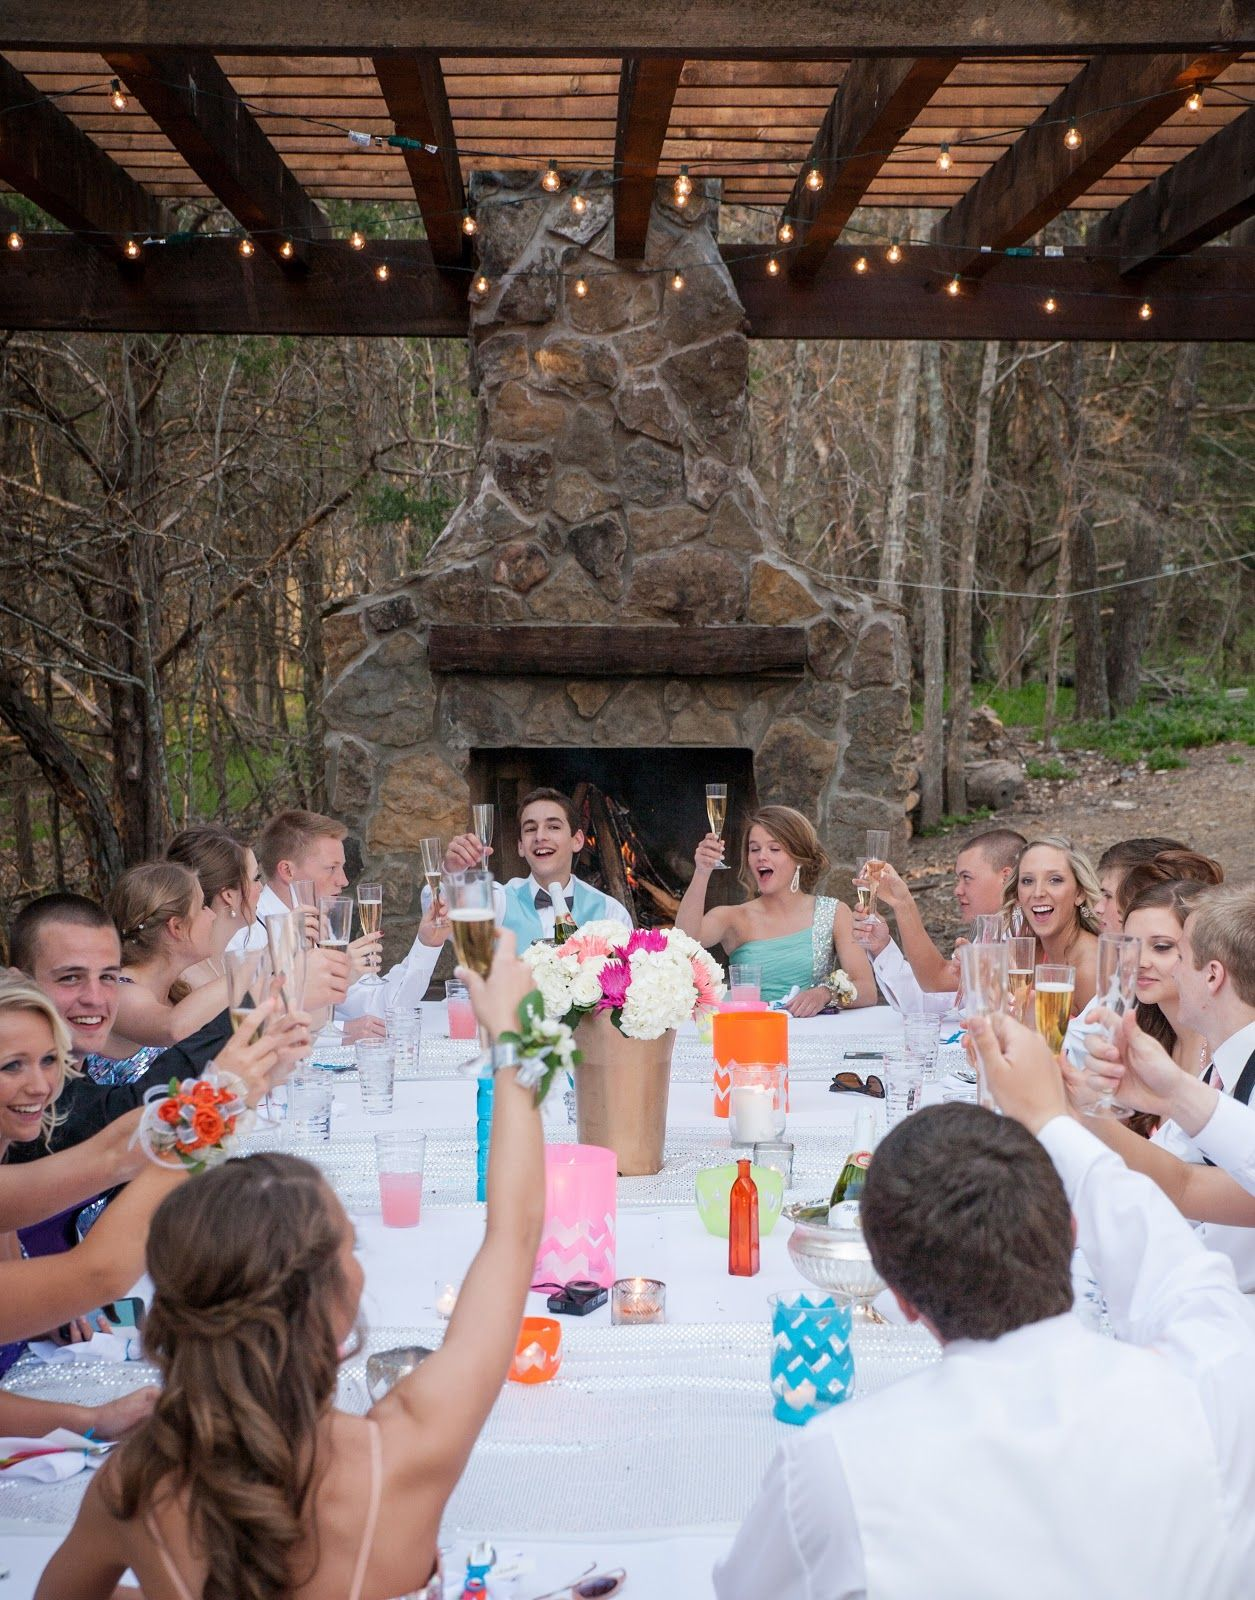 Superior Prom Dinner Party Ideas Part - 9: Abby Mitchell Event Planning And Design: Real Event: Prom Dinner Party